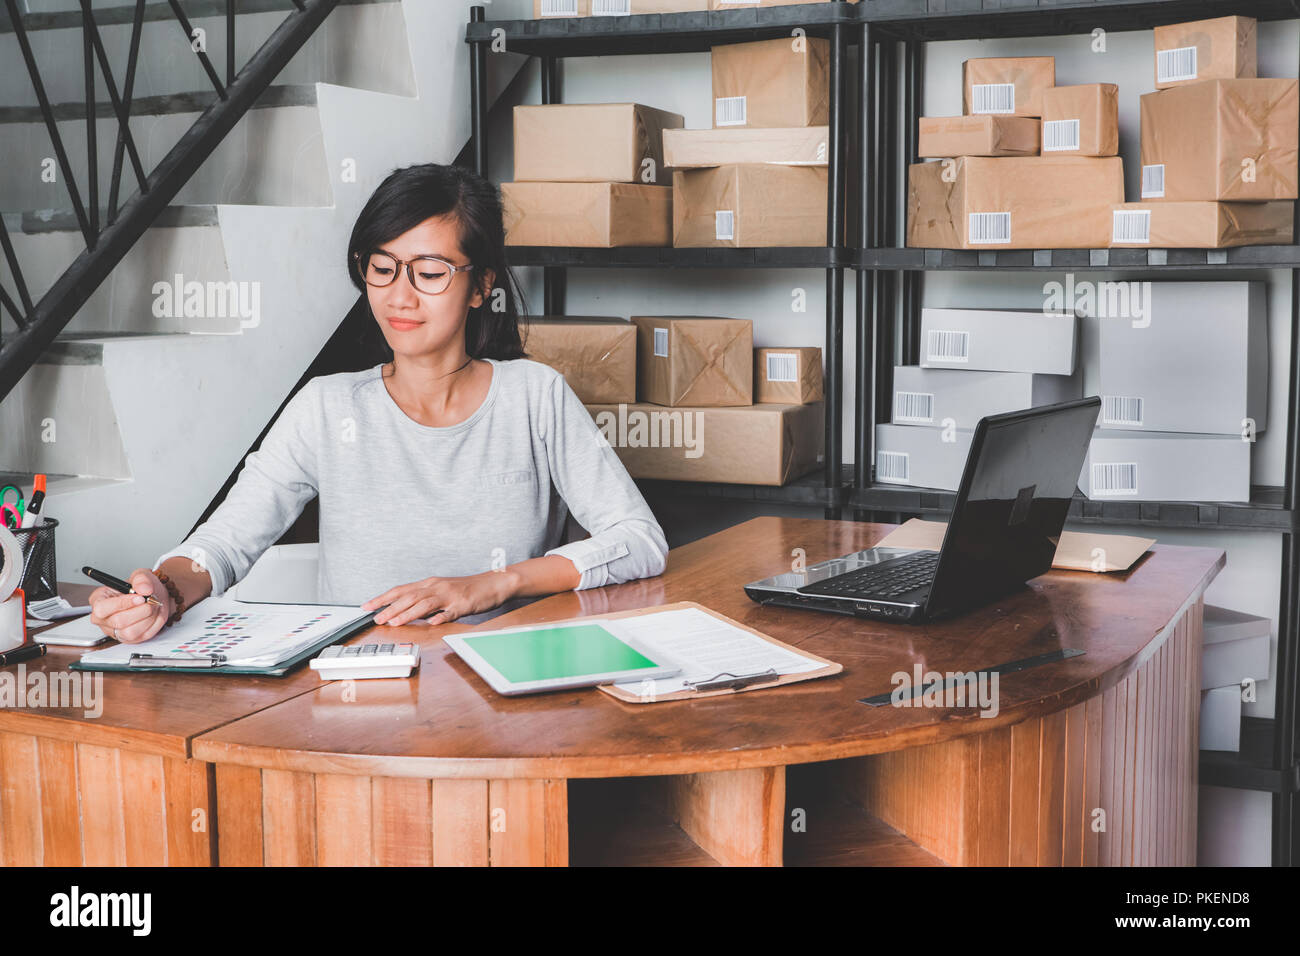 online shop seller working at home office - Stock Image